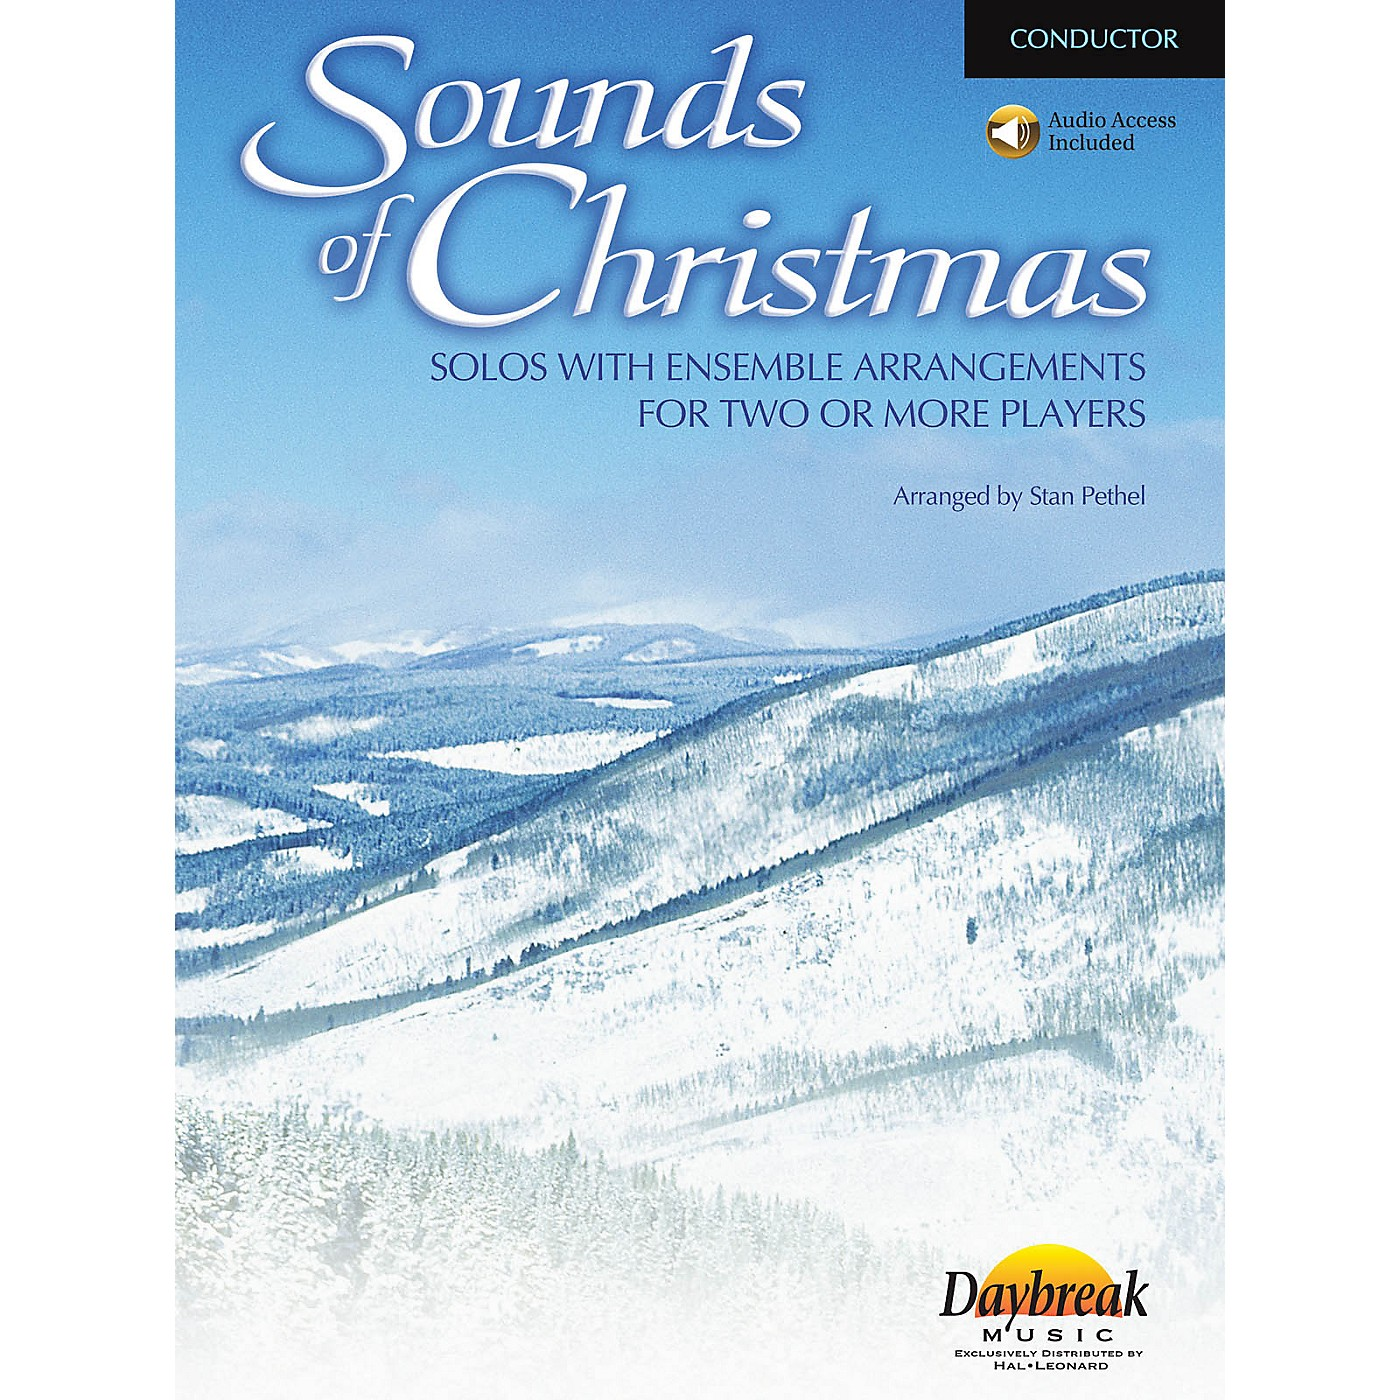 Daybreak Music Sounds of Christmas (Solos with Ensemble Arrangements for Two or More Players) CD ACCOMP by Stan Pethel thumbnail